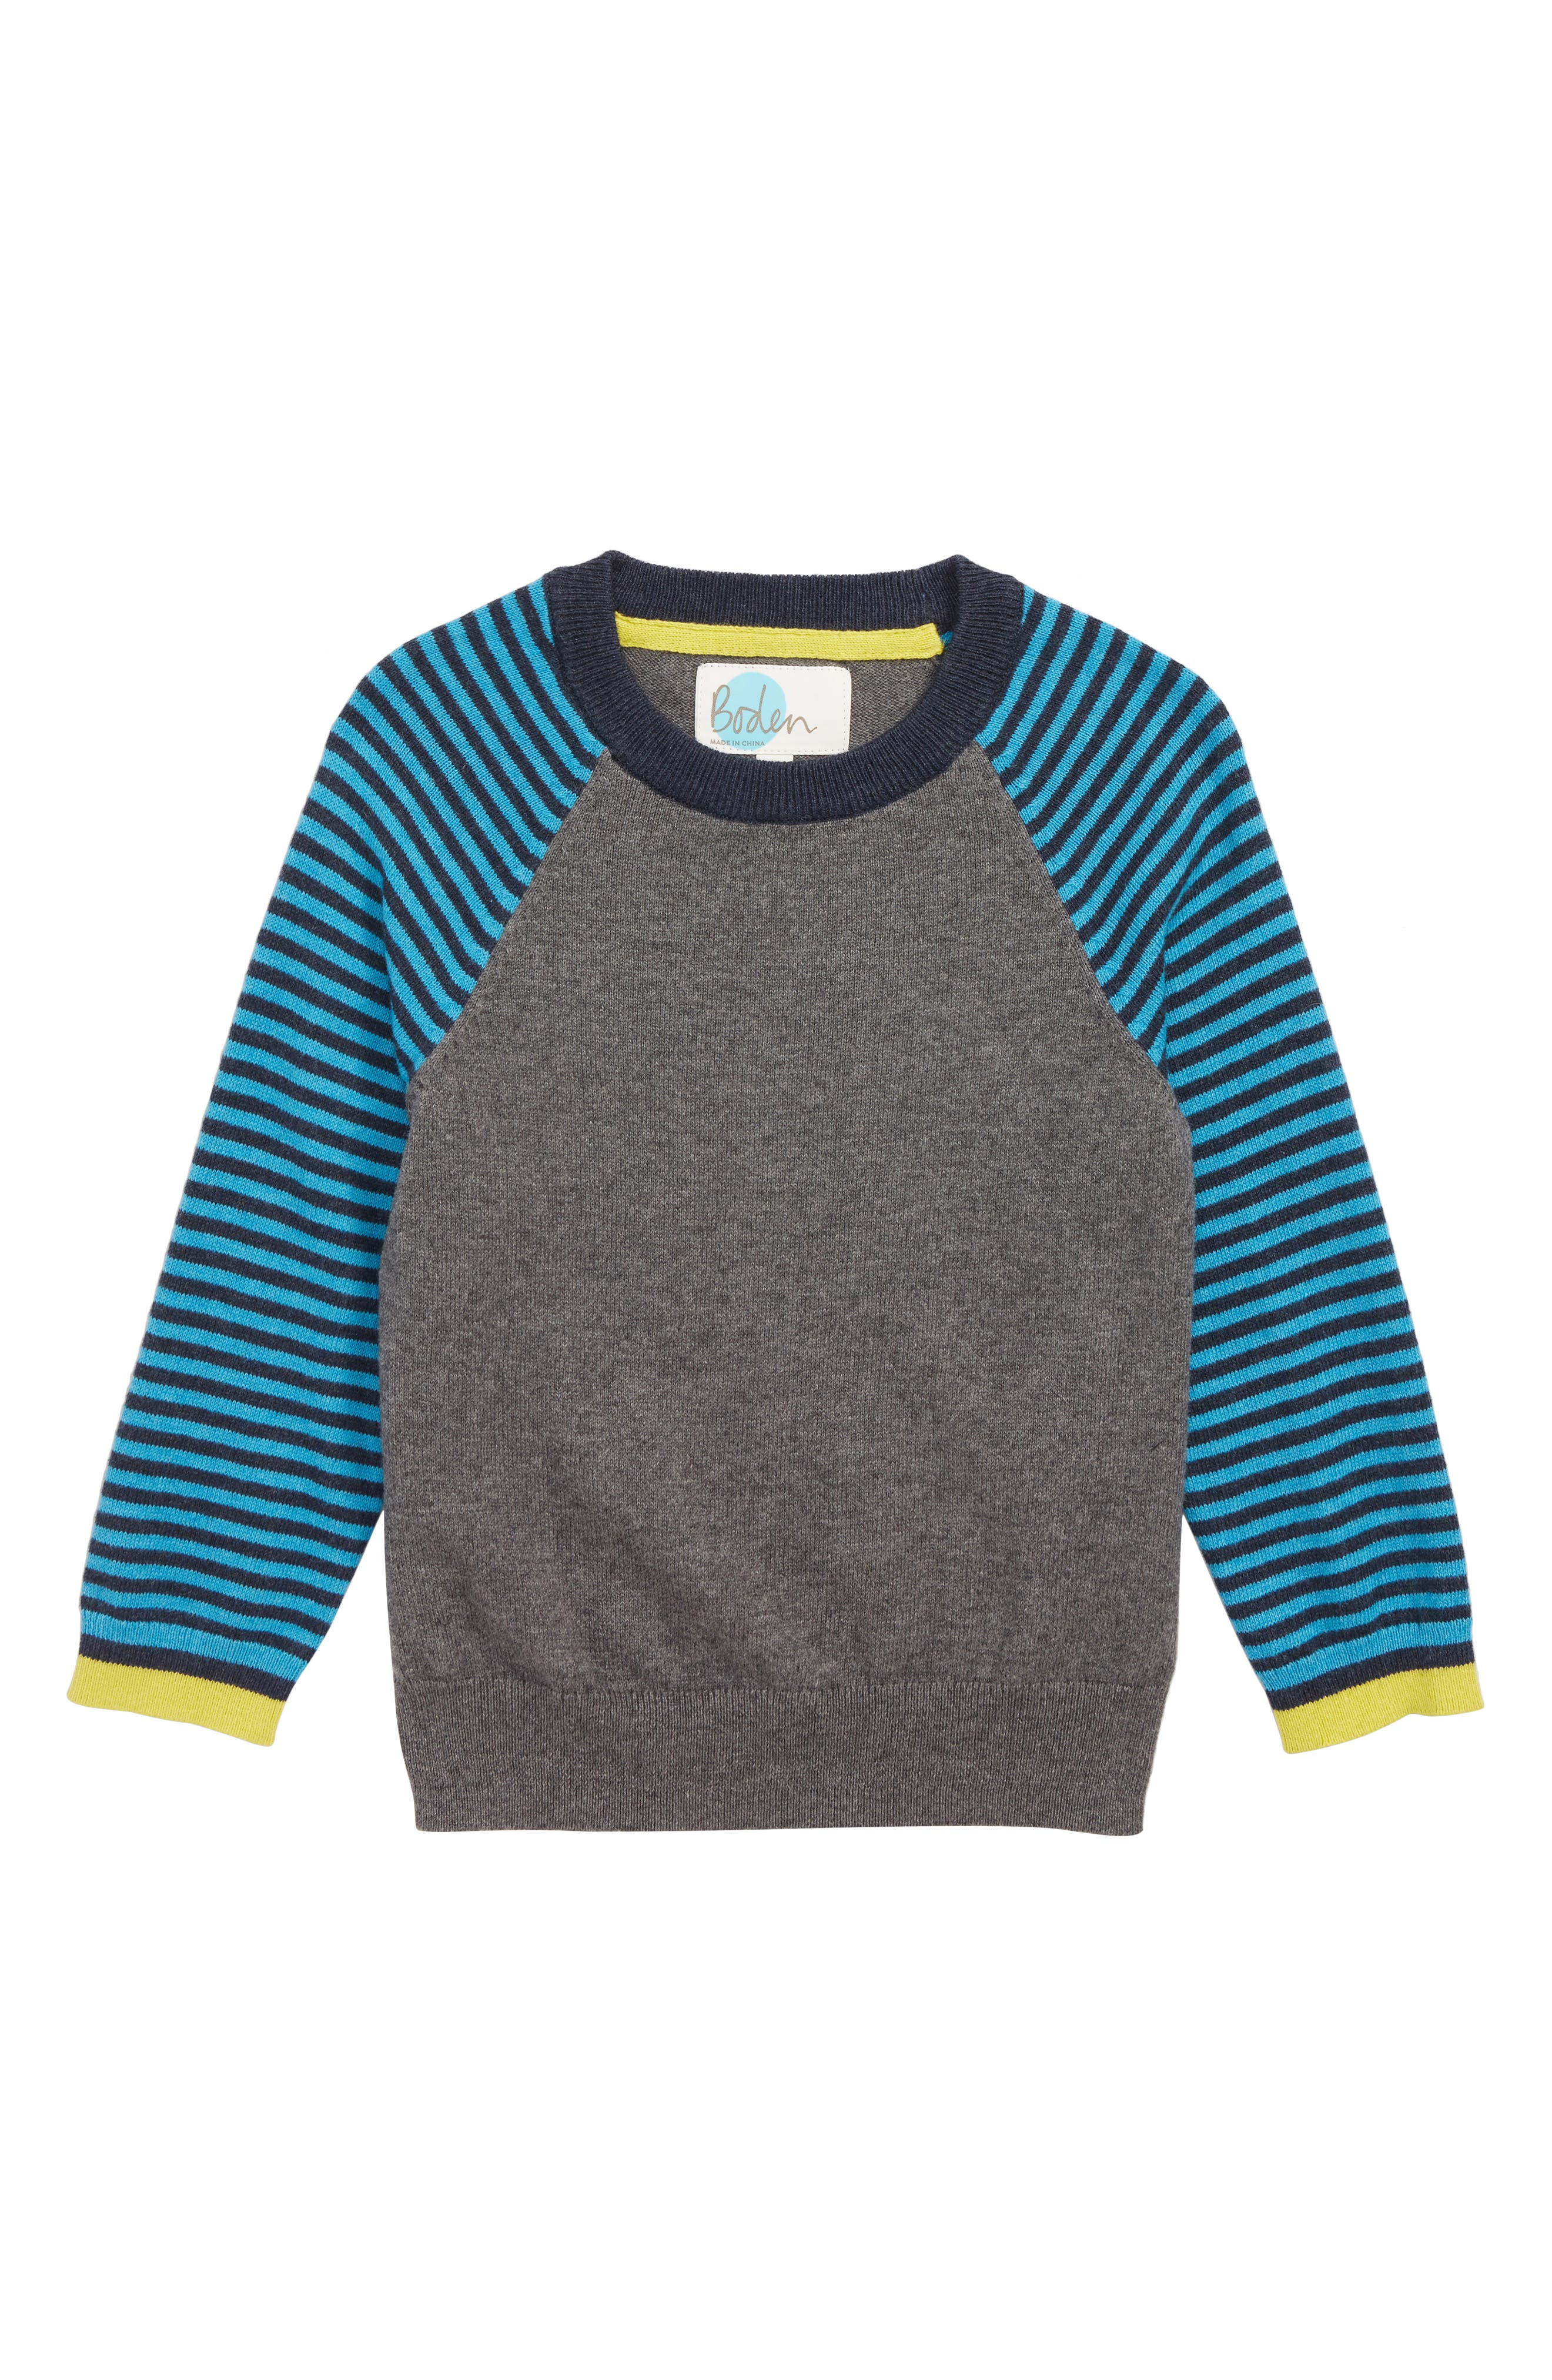 Stripe Sweater,                         Main,                         color, CHARCOAL MARL/ ASTRO GREEN